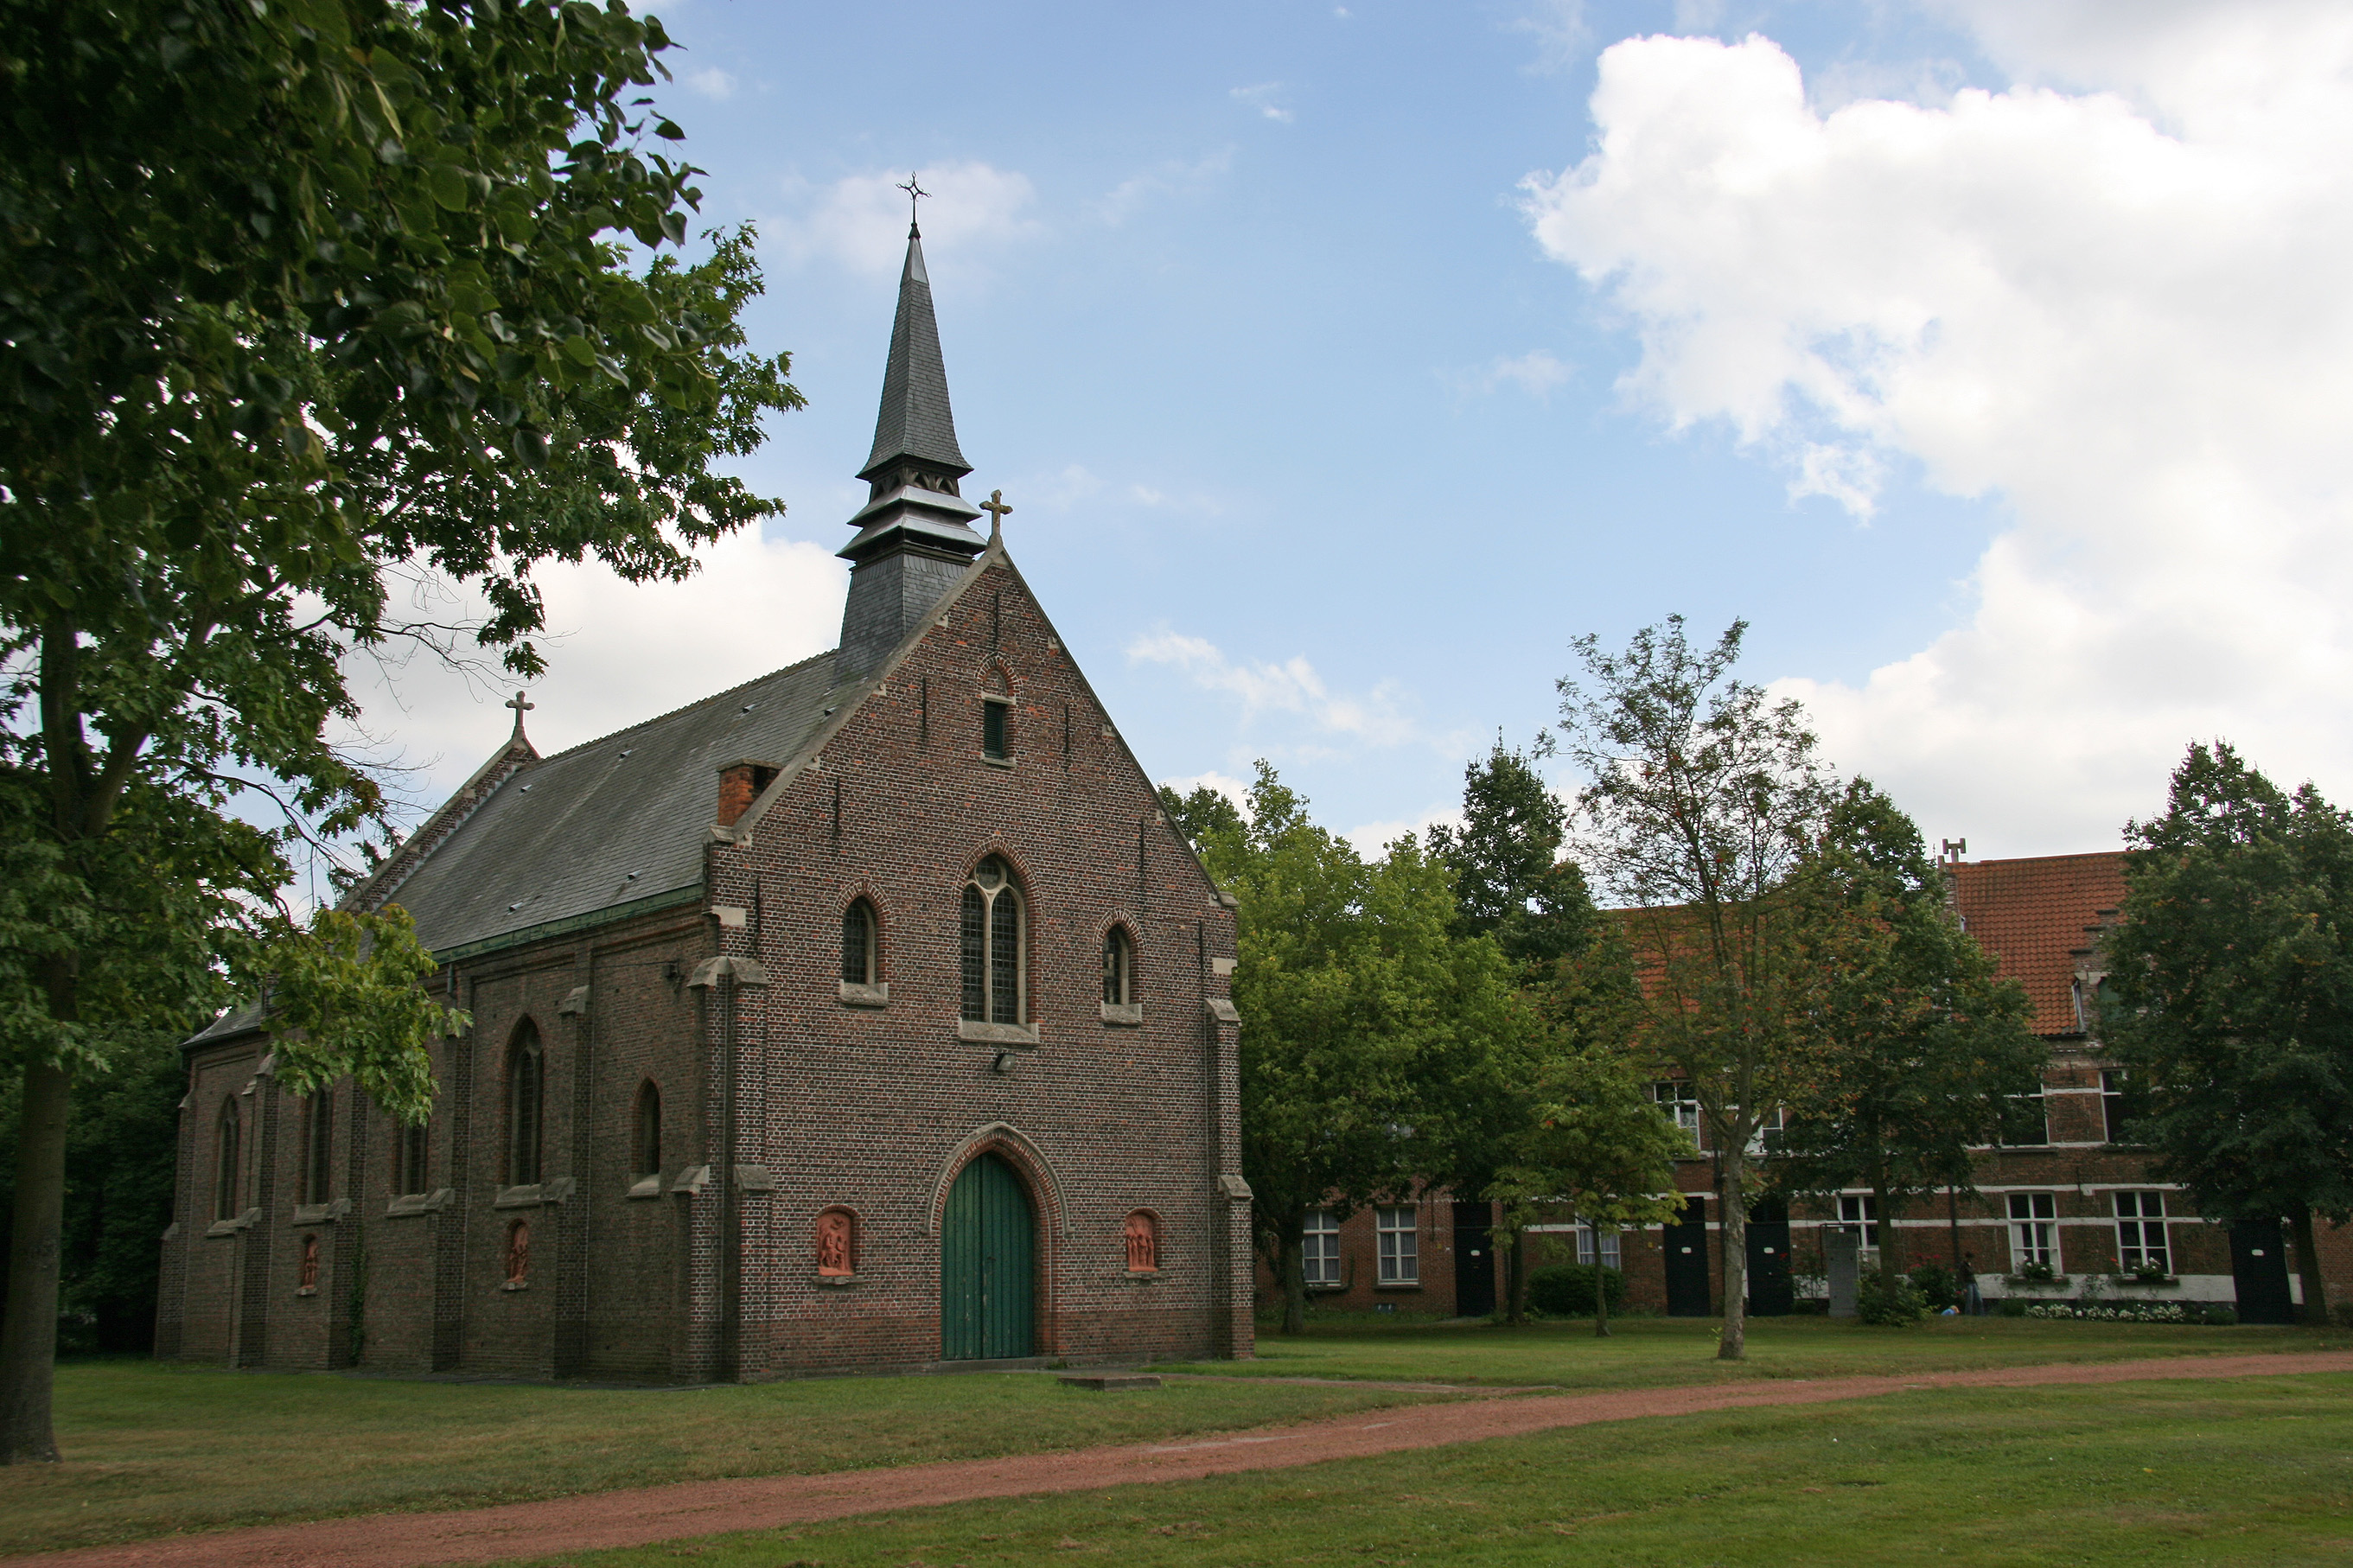 The central church of the béguinage in Dendermonde.